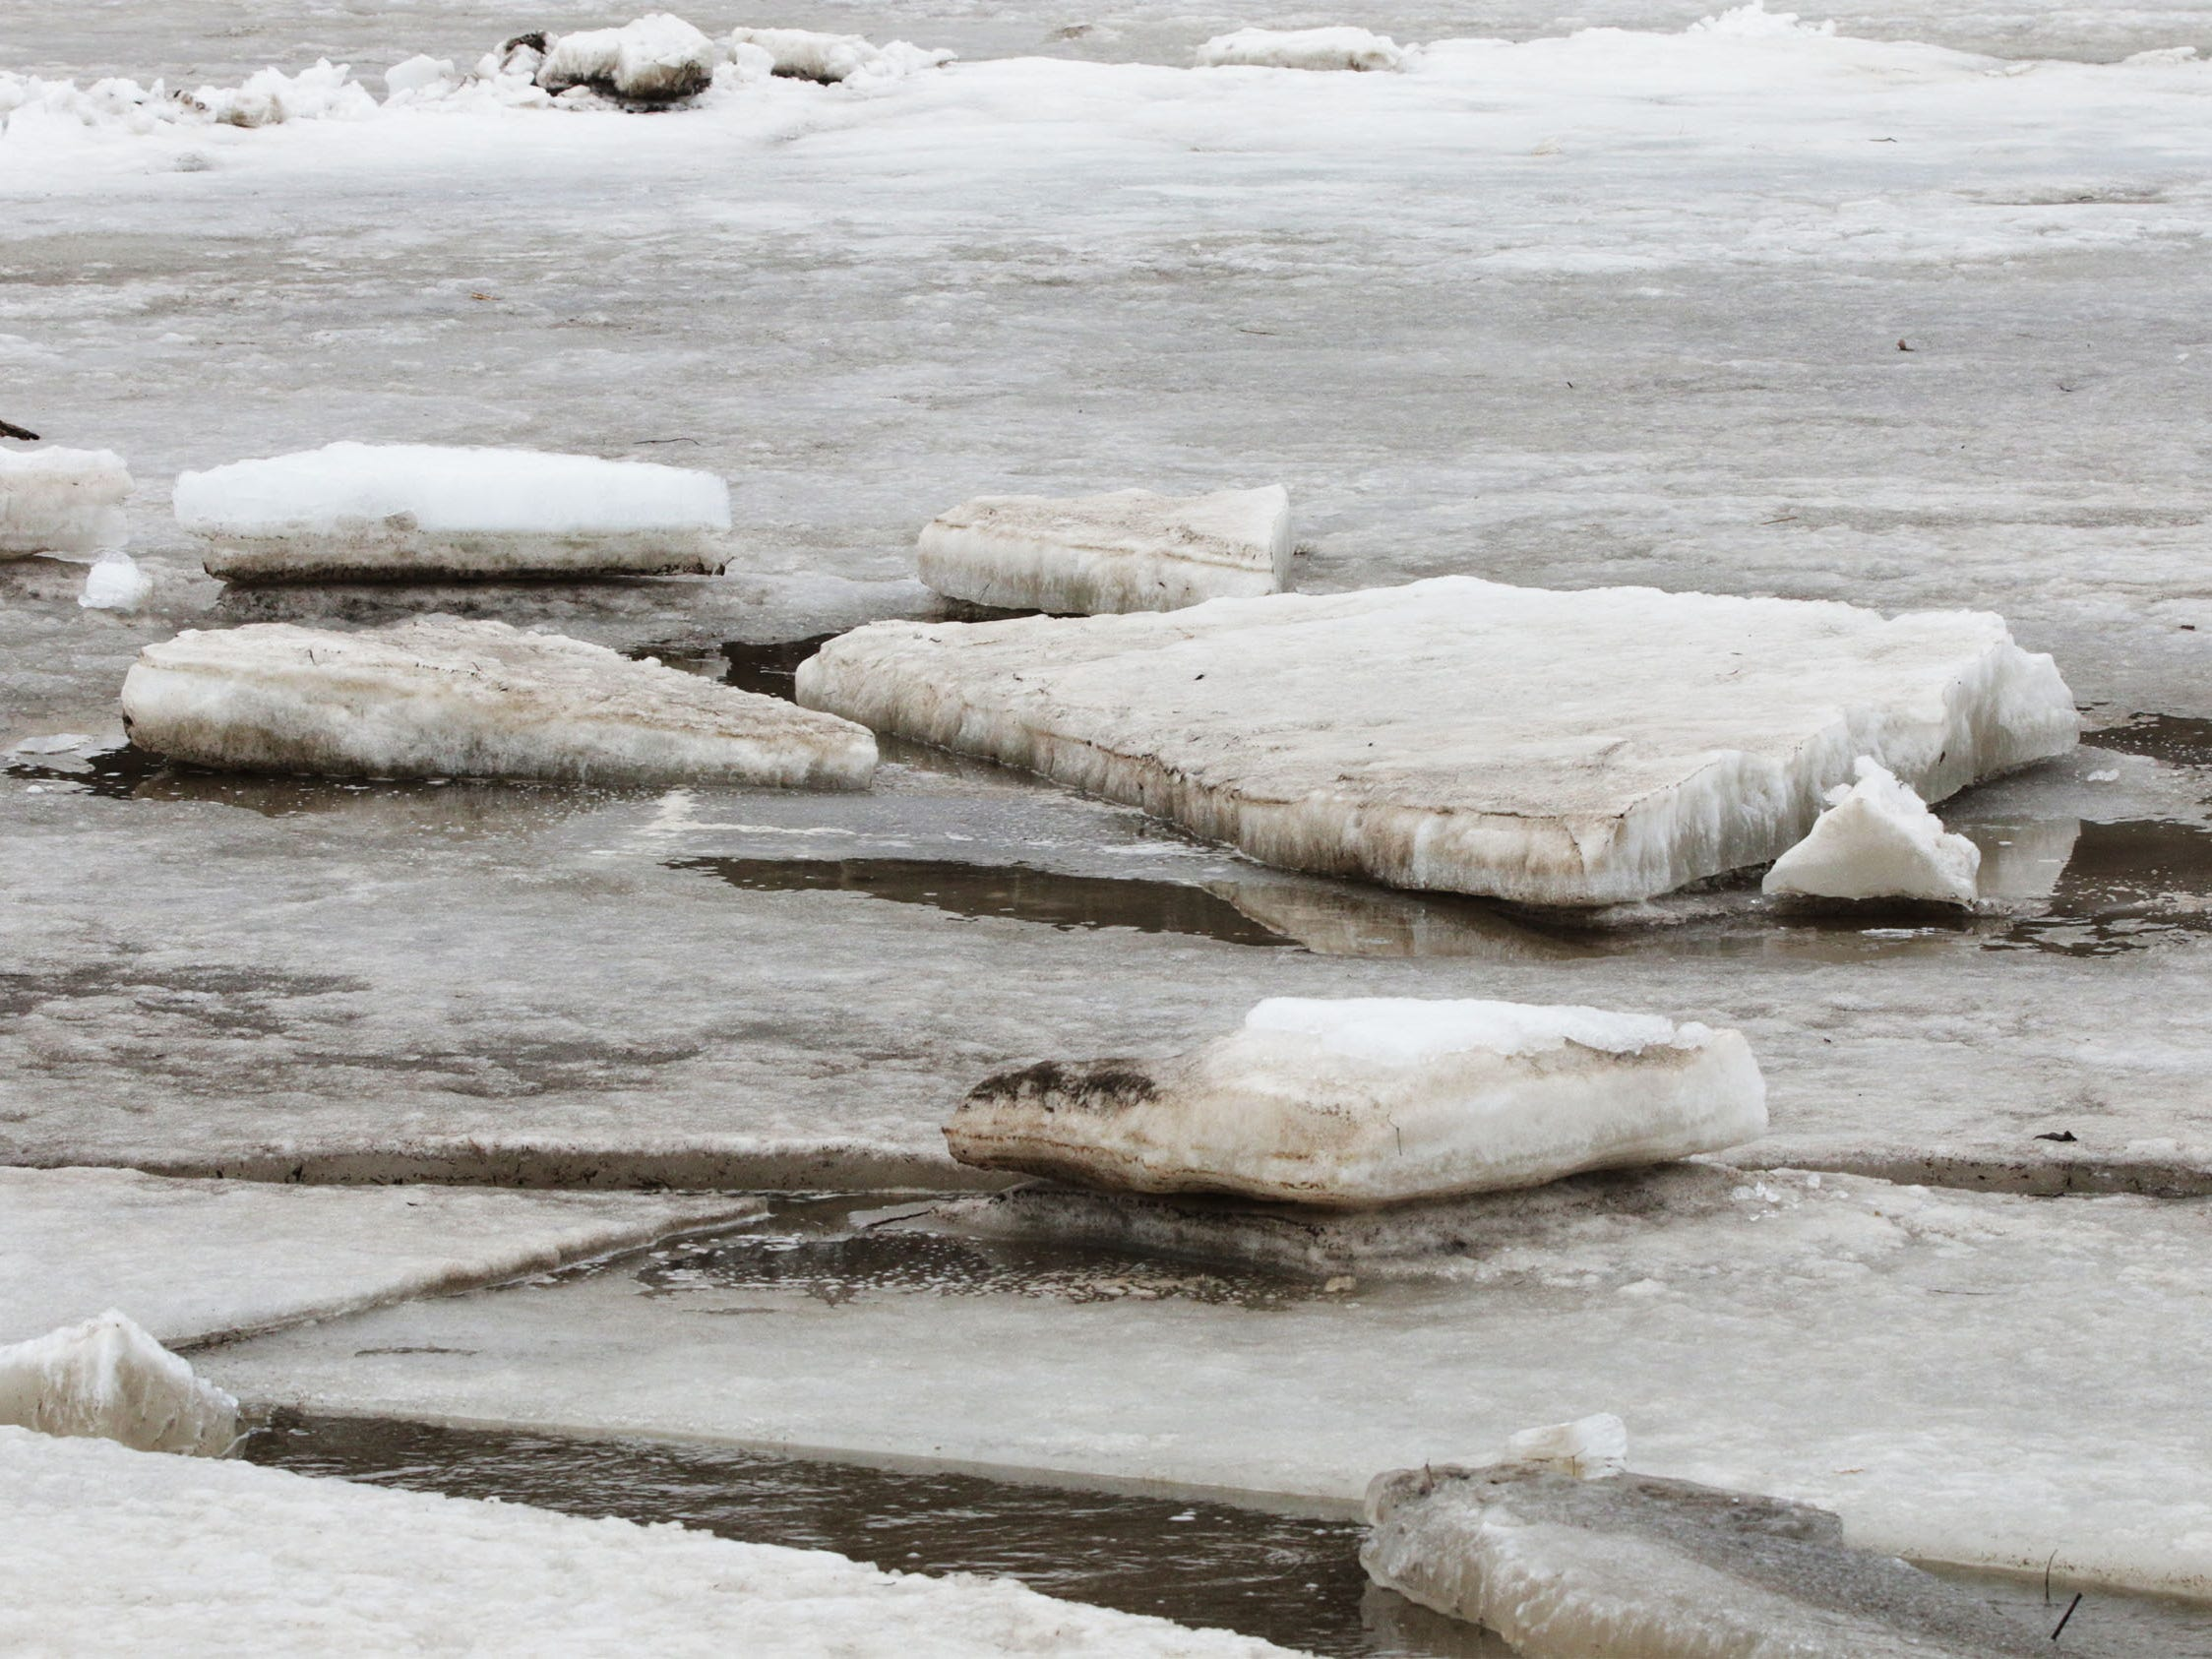 Huge slabs of ice park on top of frozen ice near Kiwanis Park on the Sheboygan River, Wednesday, March 20, 2019, in Sheboygan, Wis. Ice has jammed the area and is expected to flow down river soon.